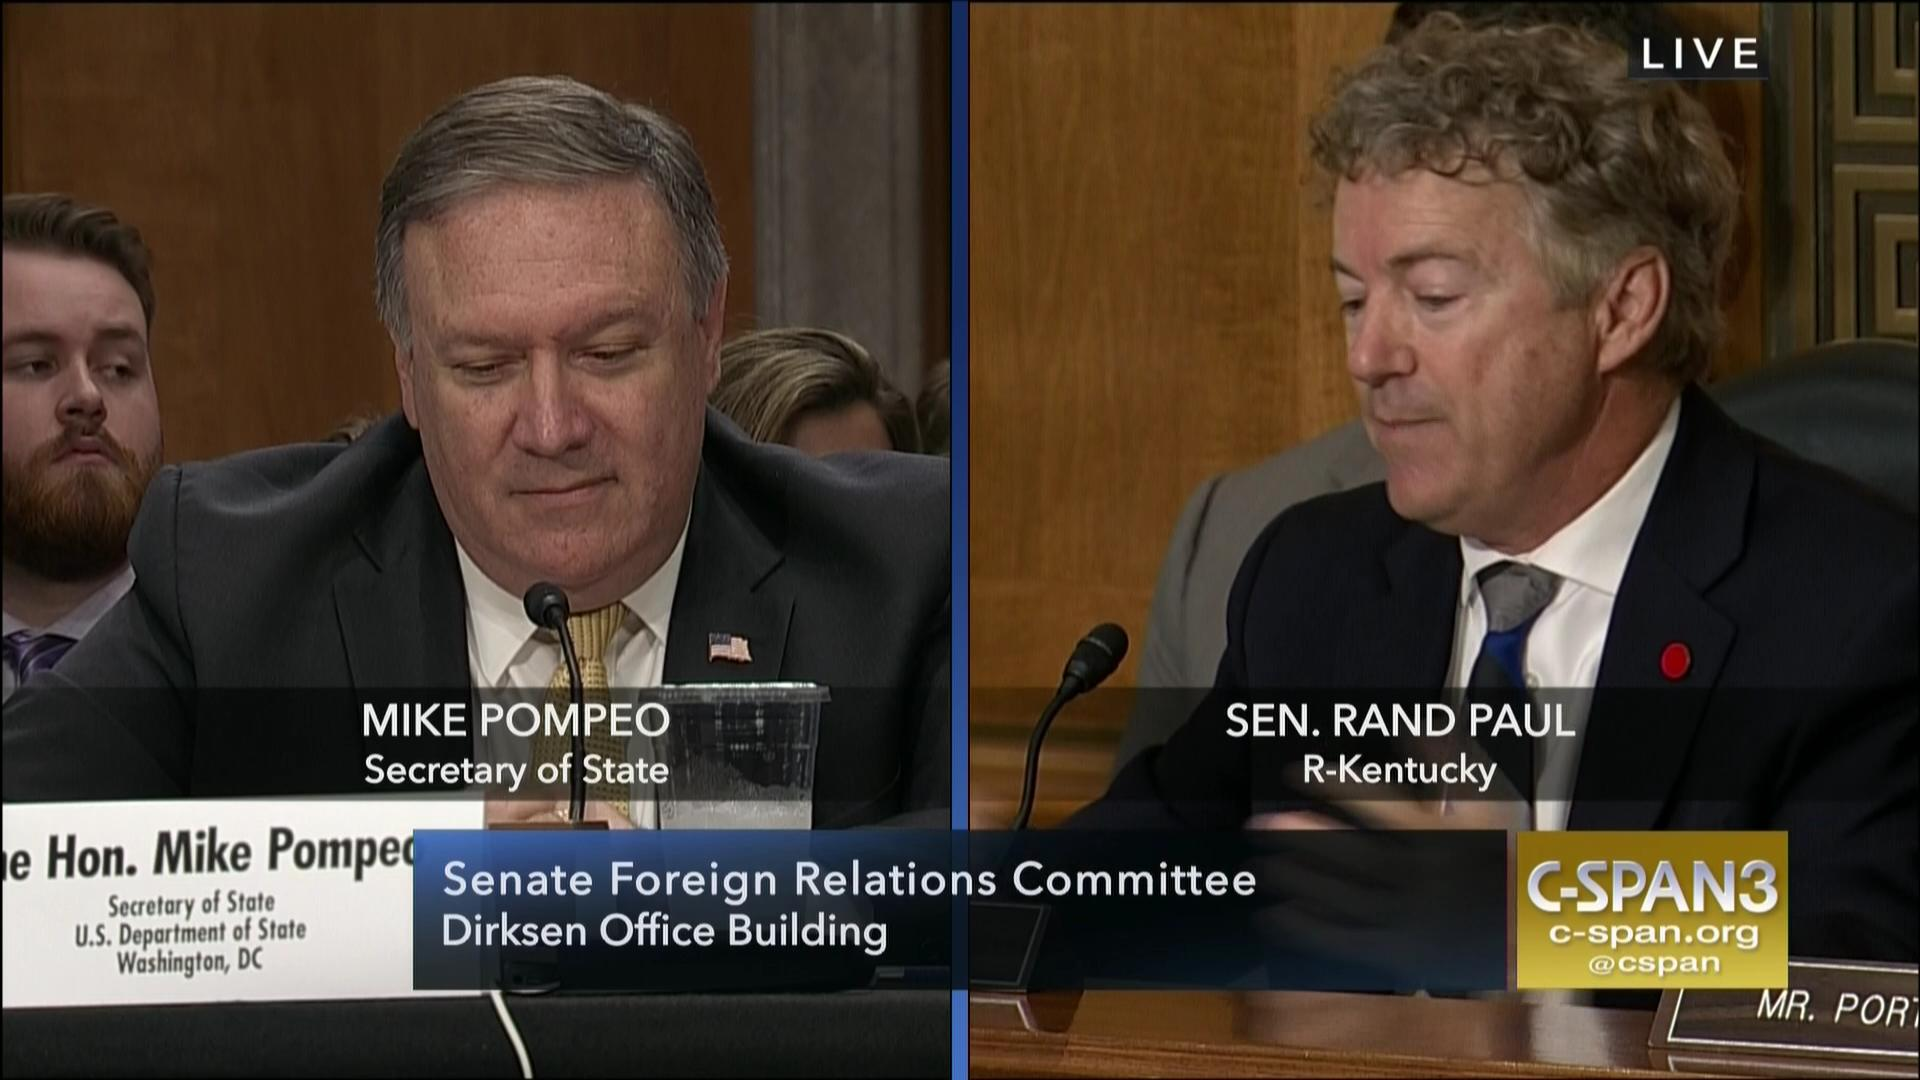 US Senator to Pompeo: You Have No 'Permission' for War with Iran